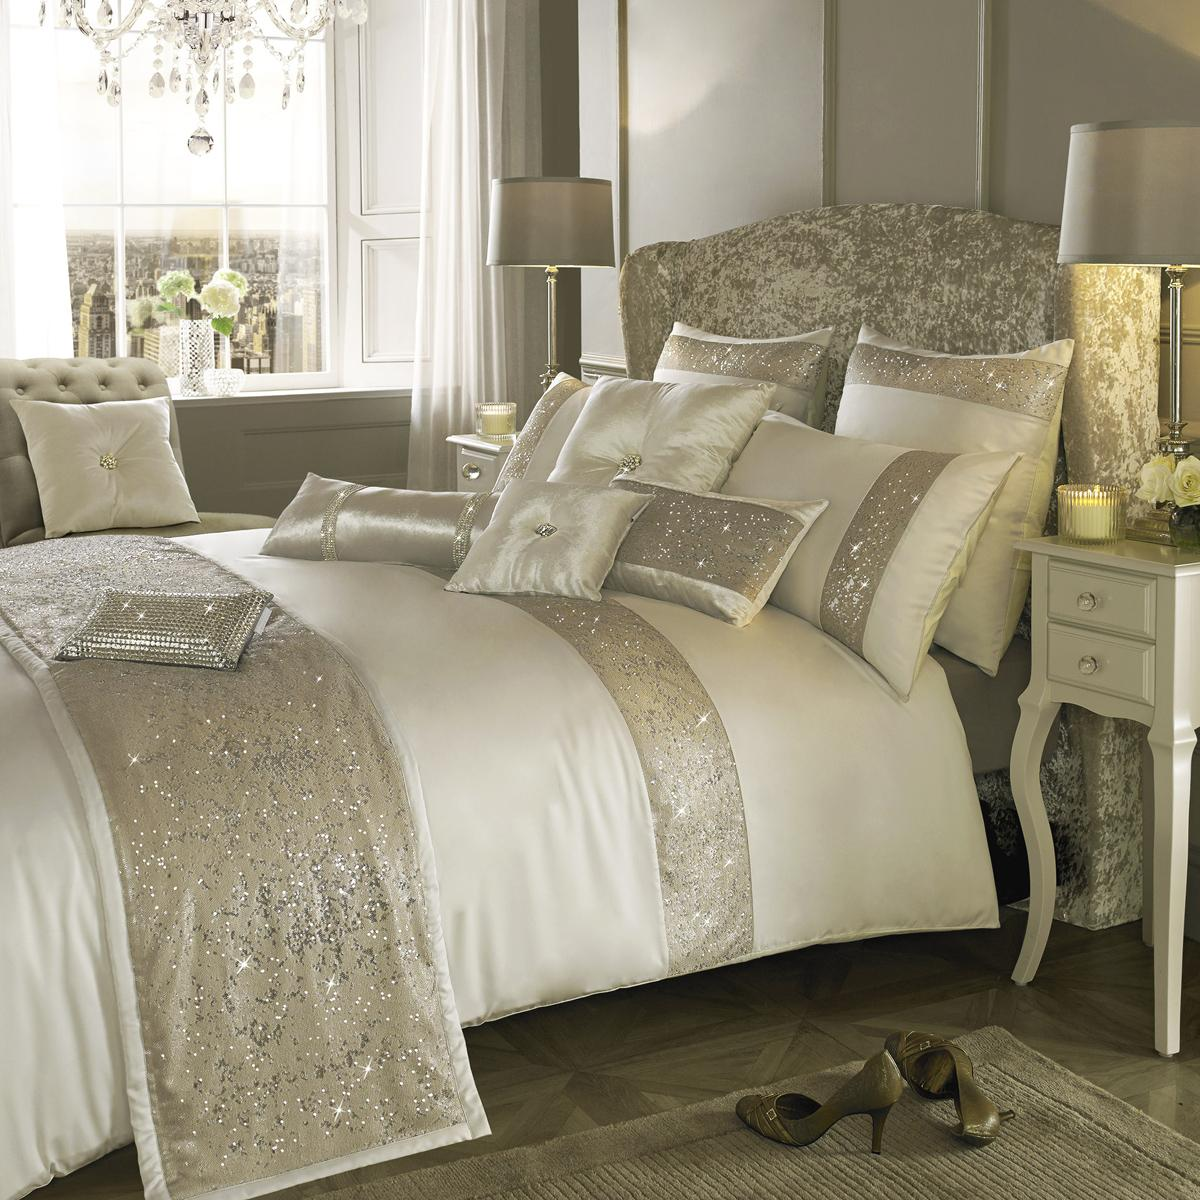 Oyster Kylie Minogue Duo Bedding